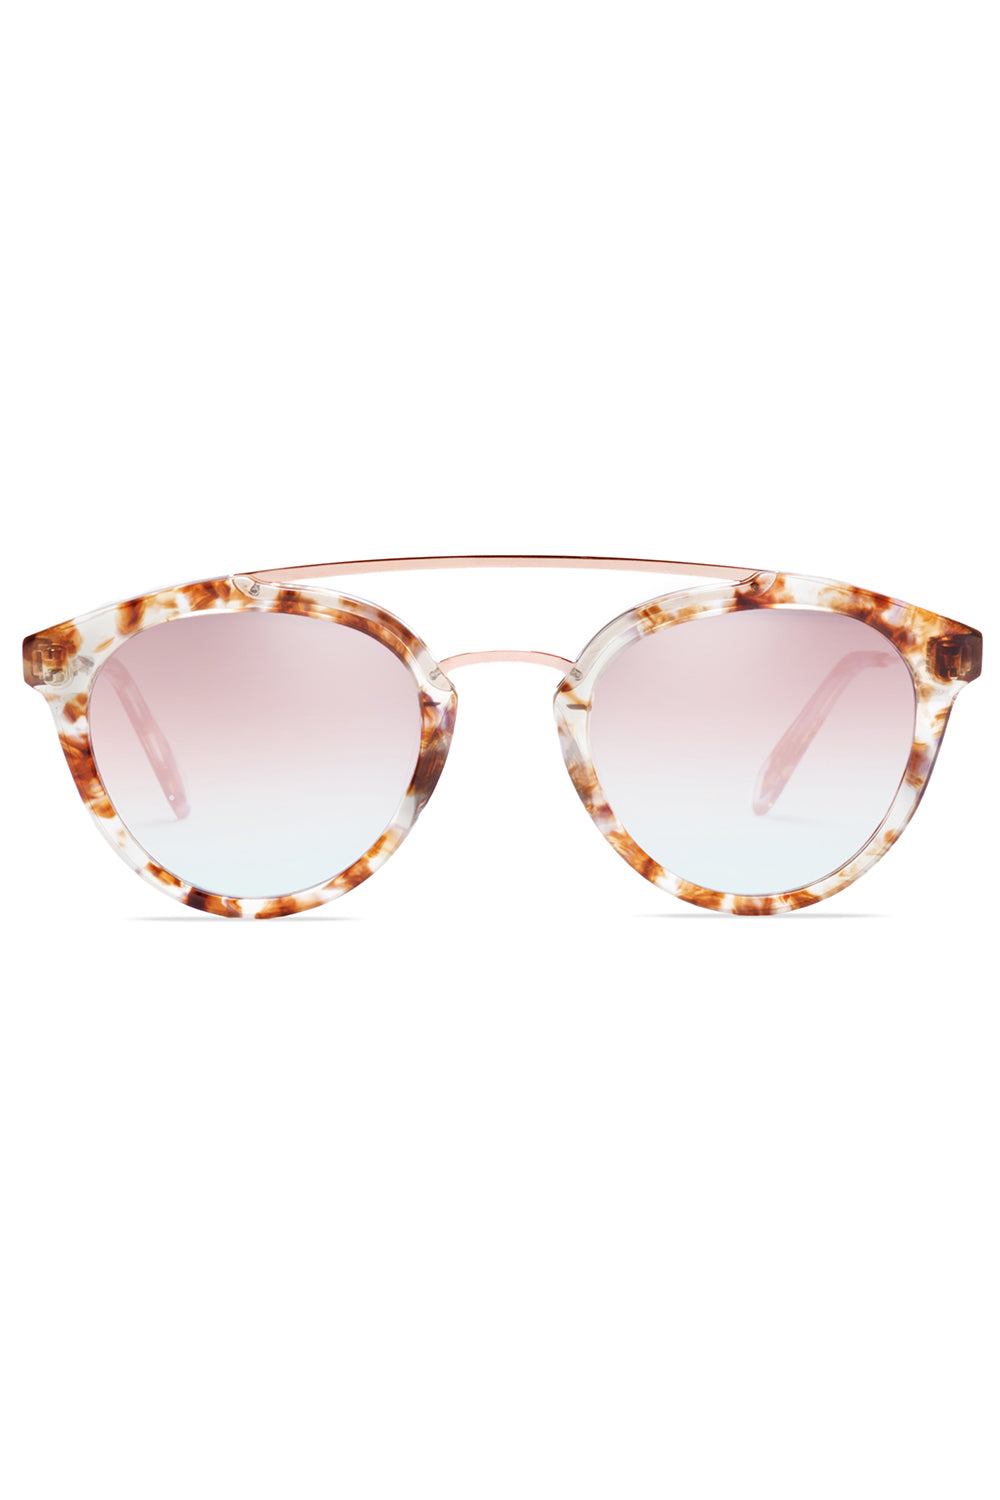 Double Bridge 05 Sunglasses in Polished Quartz Tortoise Acetate/Polished Rose Gold Metal